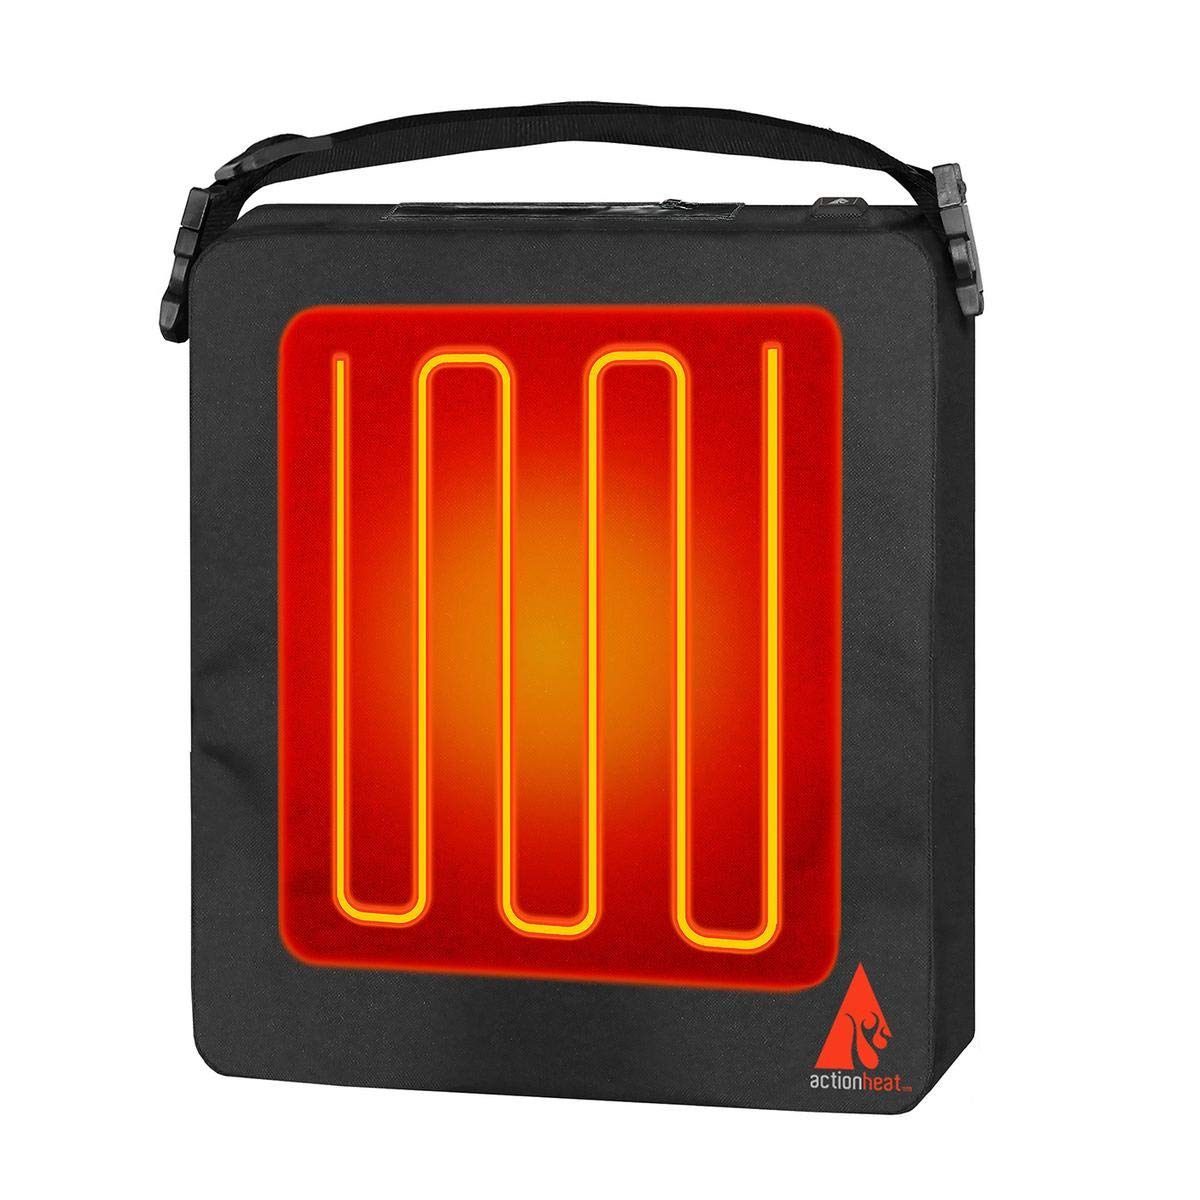 ActionHeat 5V Battery Heated Seat Cushion – Seat Warmer with 24 in. Adjustable Shoulder Strap, Waterproof Battery Pocket, Built-in Heating Panel